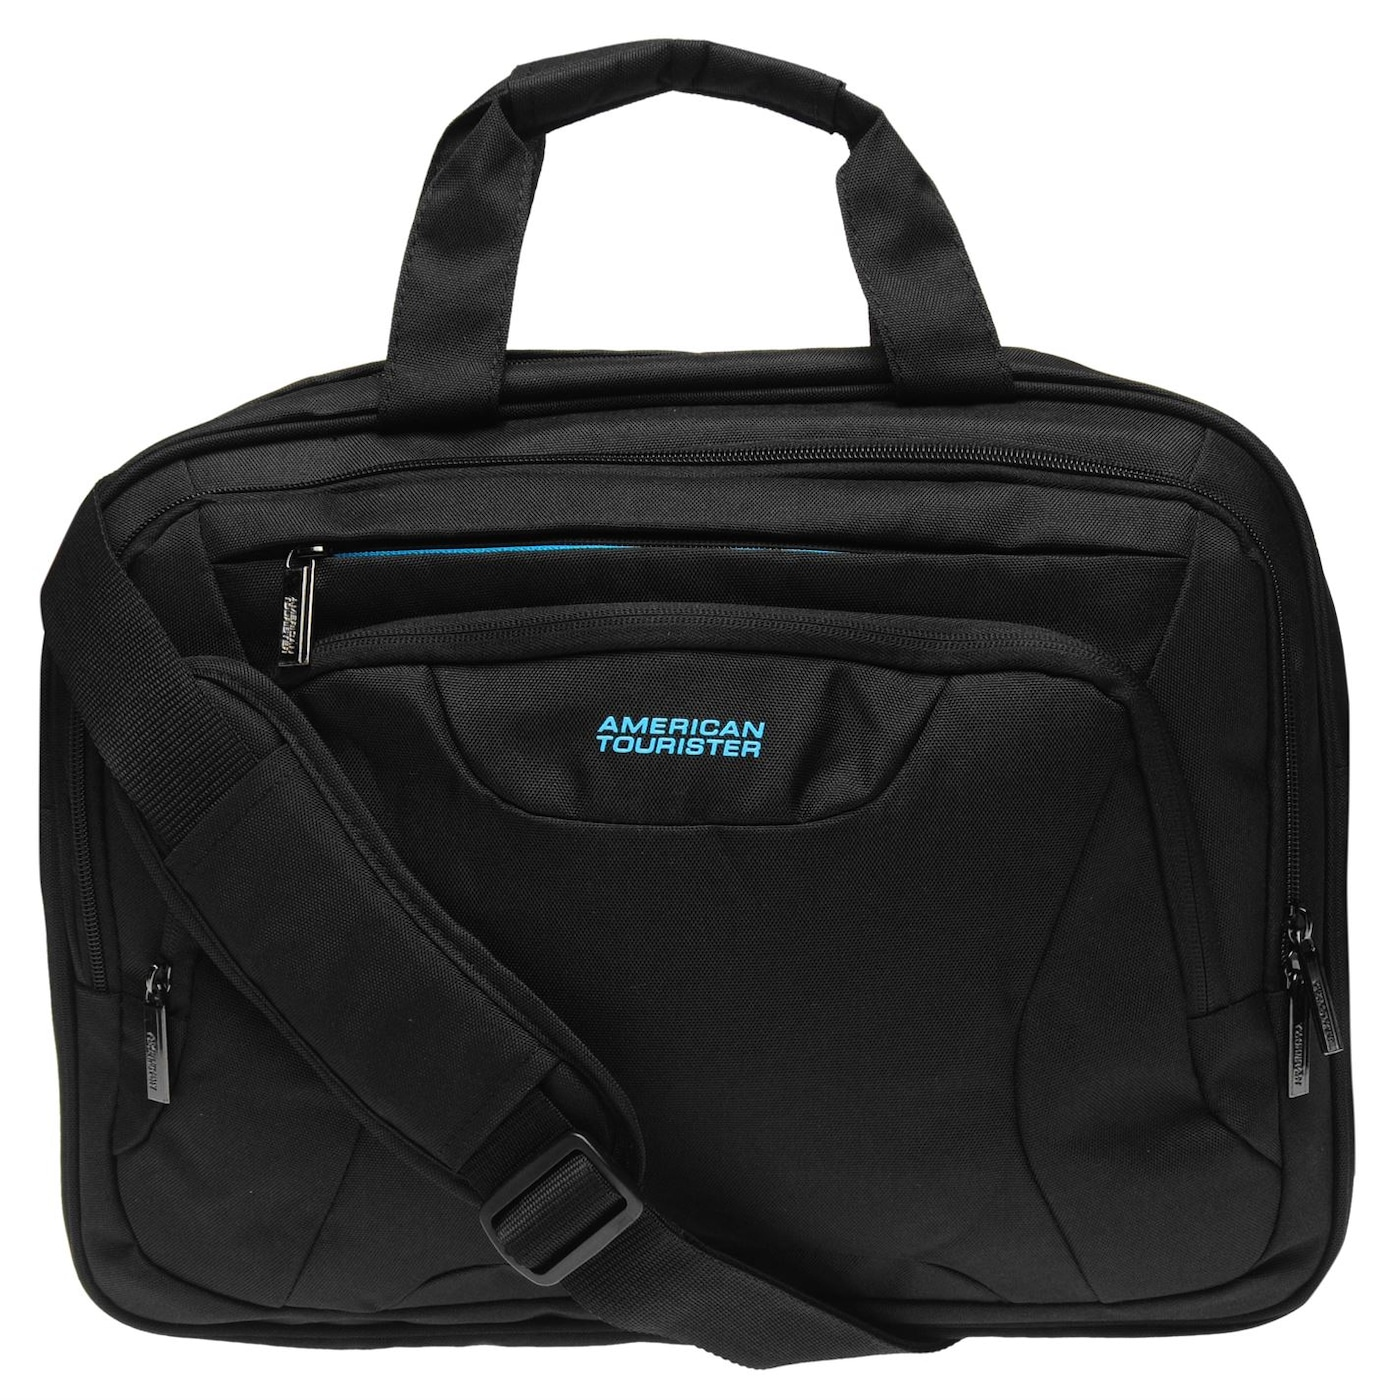 American Tourister At Work Laptop Briefcase